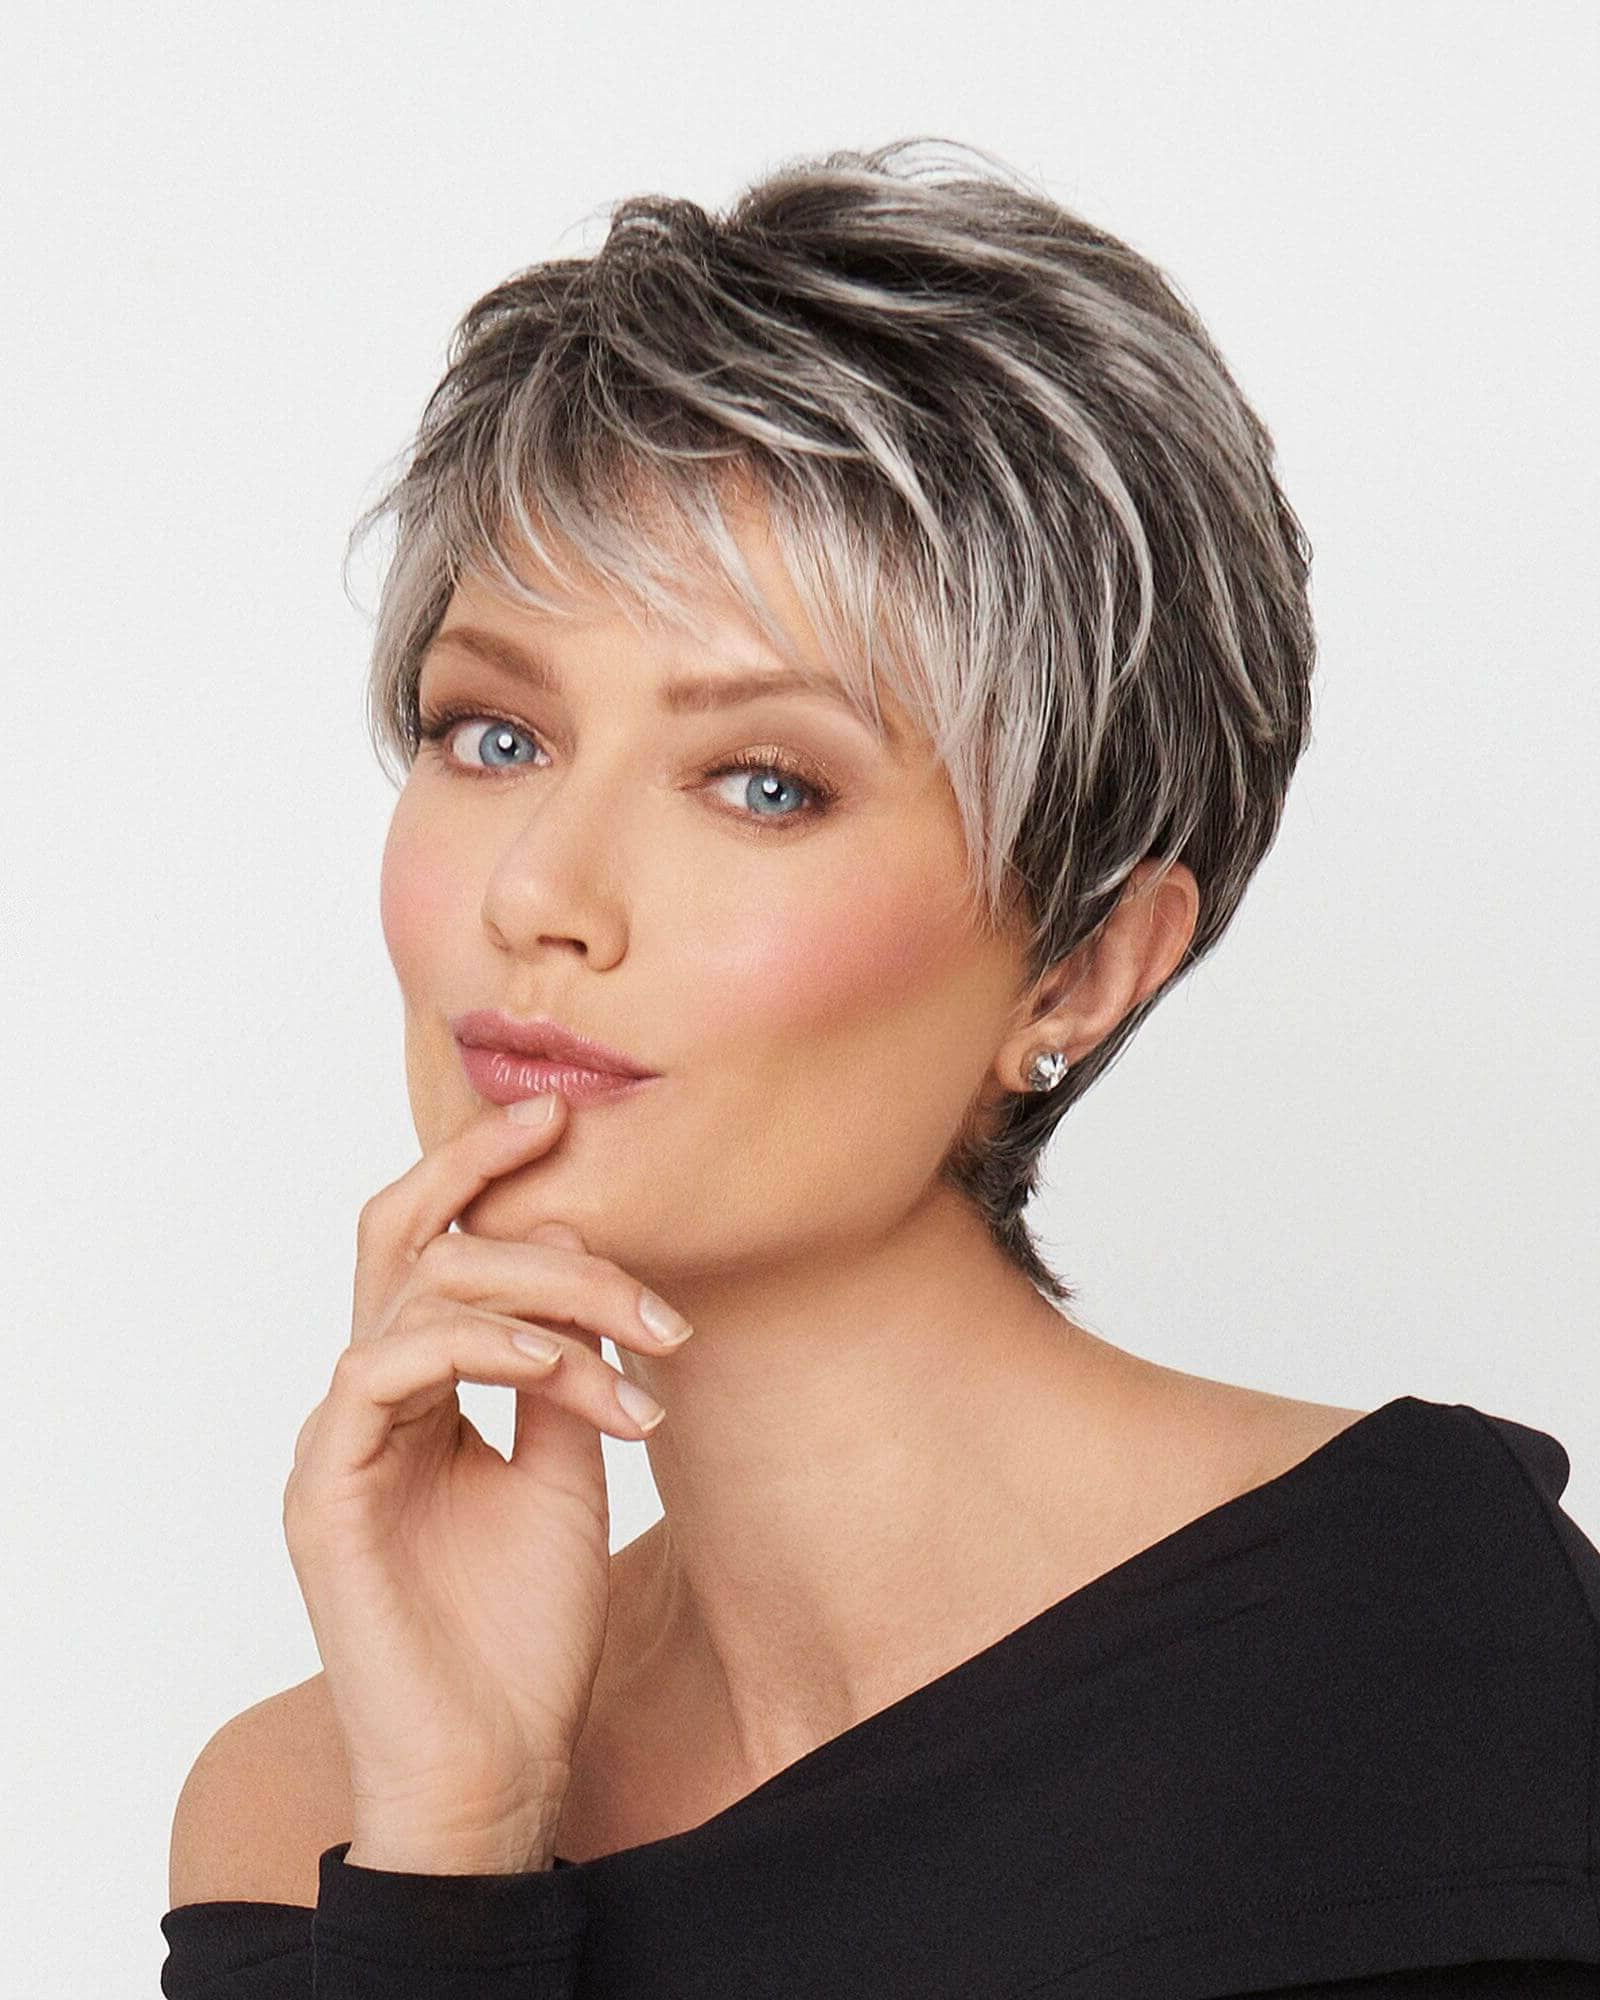 50 Pixie Haircuts You'll See Trending In 2018 Within Edgy Pixie Haircuts For Fine Hair (View 15 of 20)